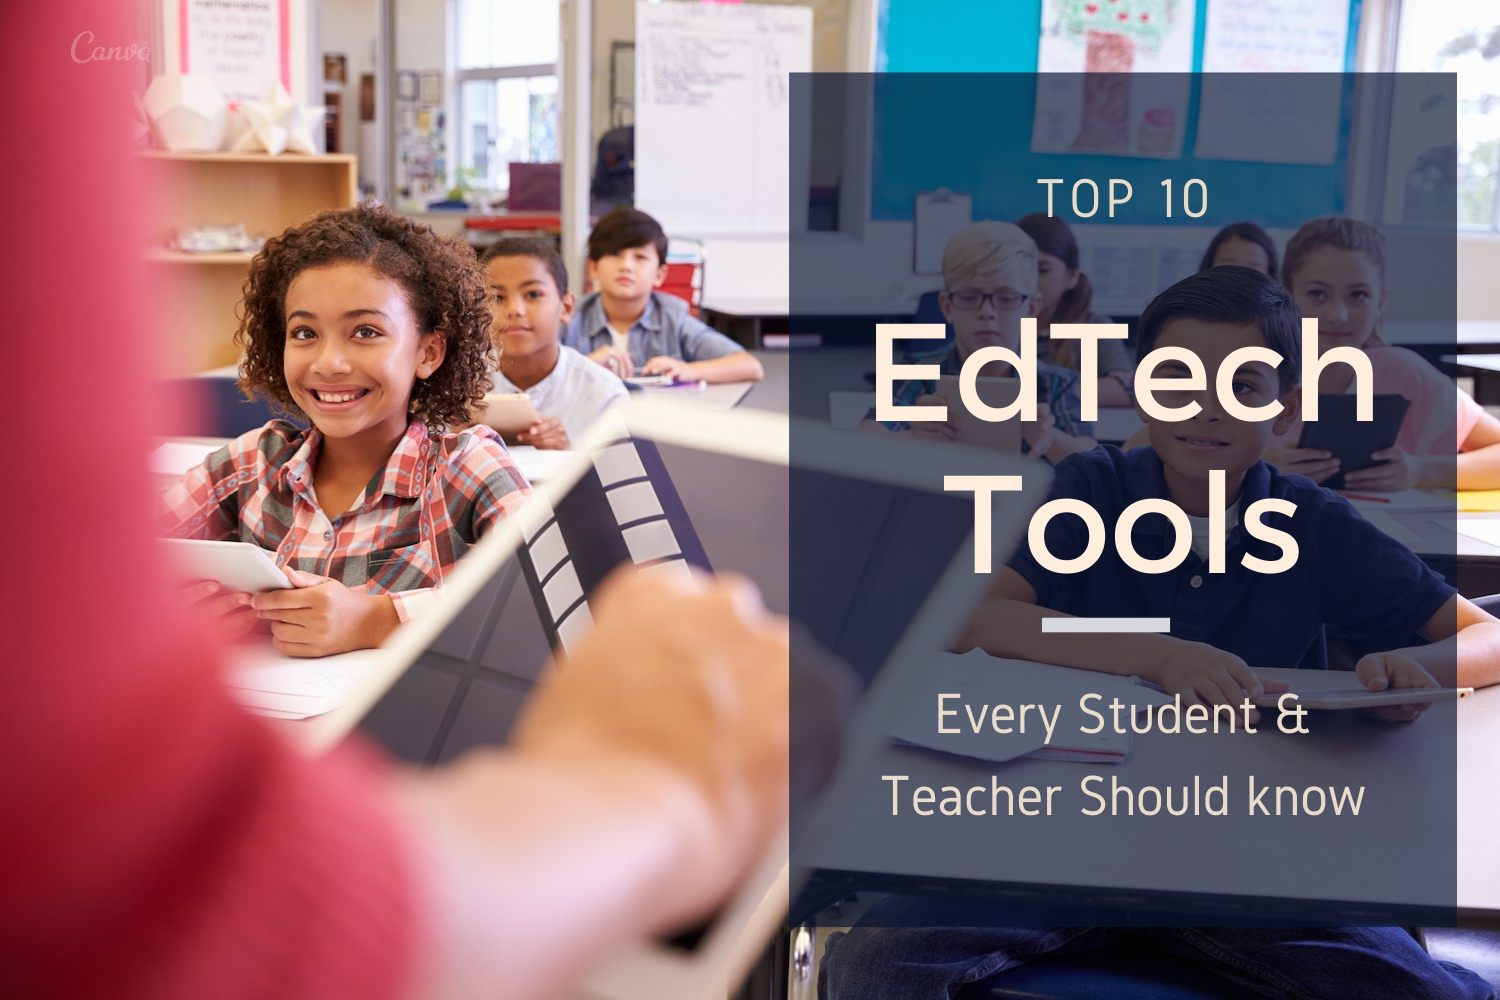 Top 10 EdTech Tools Every Student & Teacher Should know